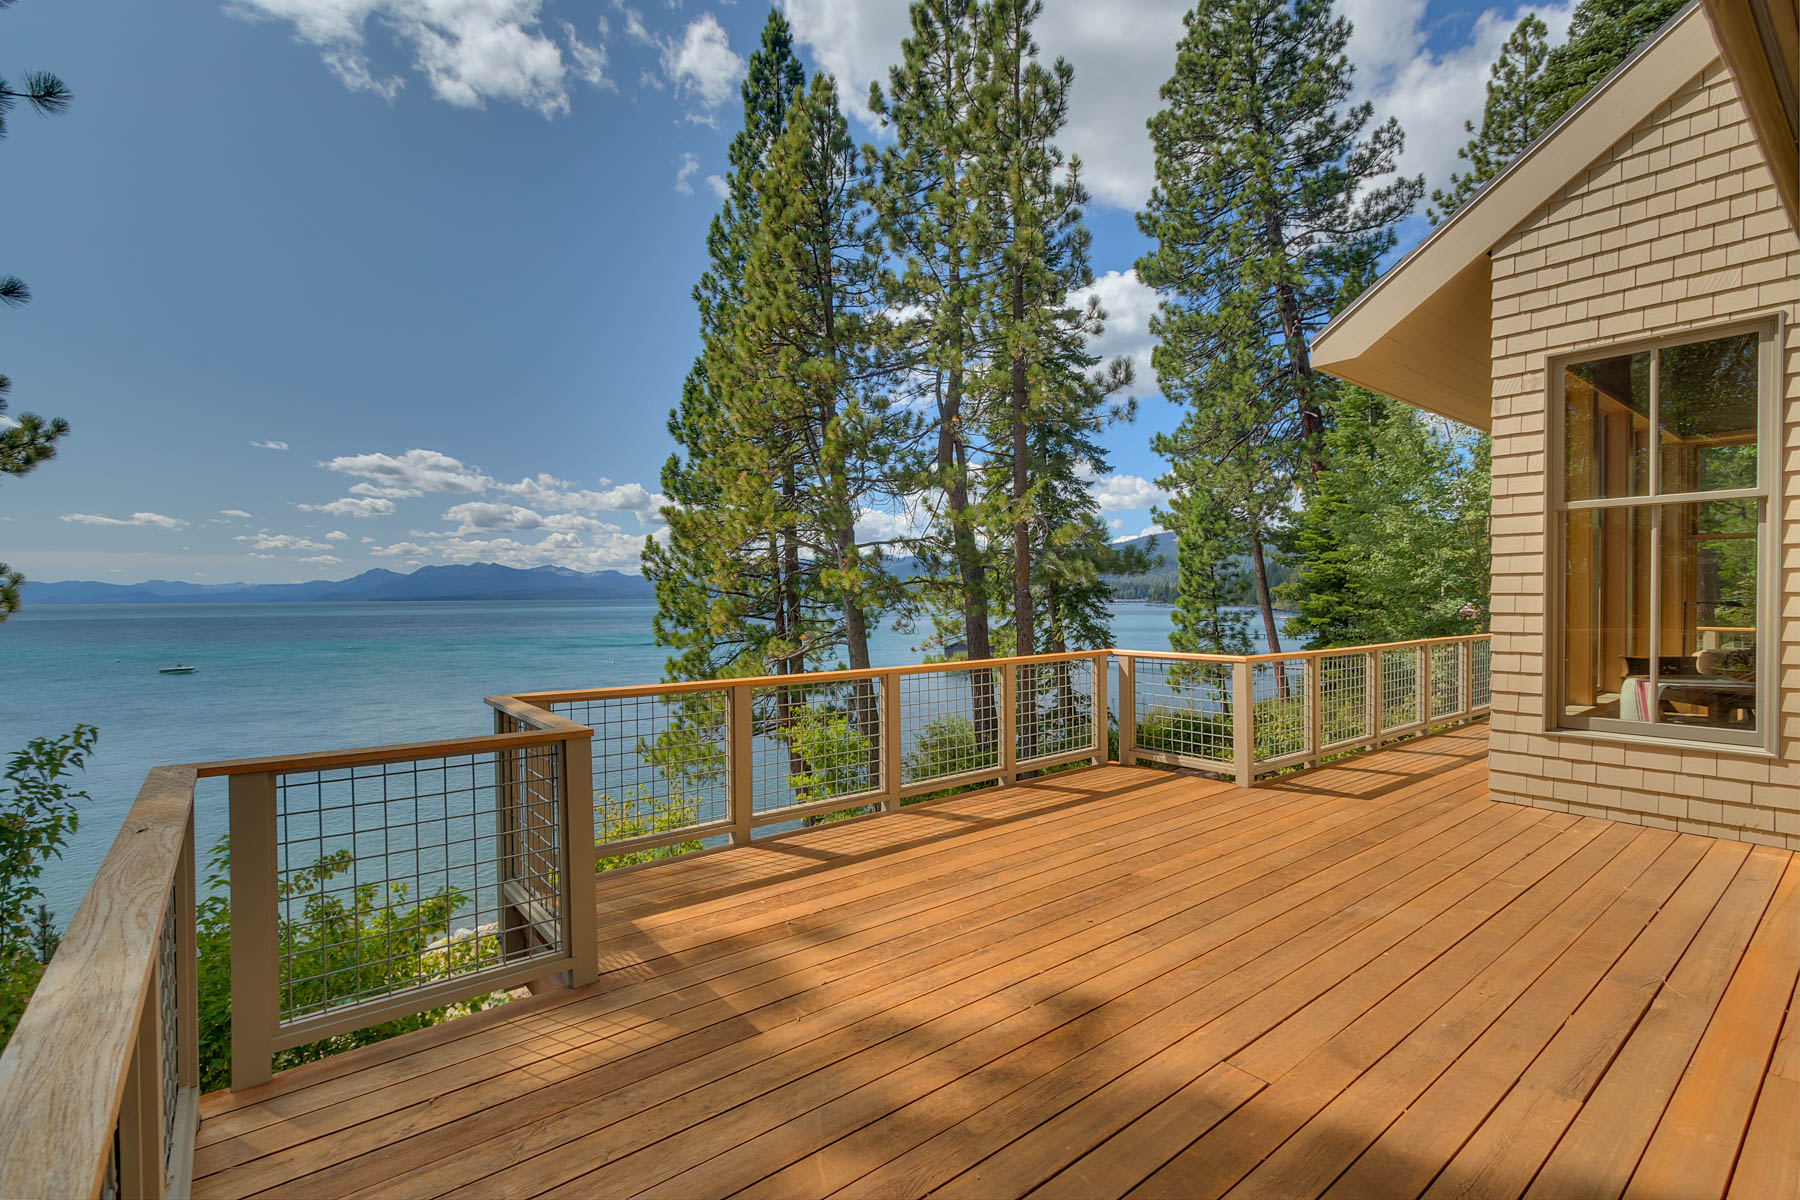 Additional photo for property listing at 2200 North Lake Blvd., Tahoe City, CA 2200 North Lake Blvd. Tahoe City, California 96145 United States